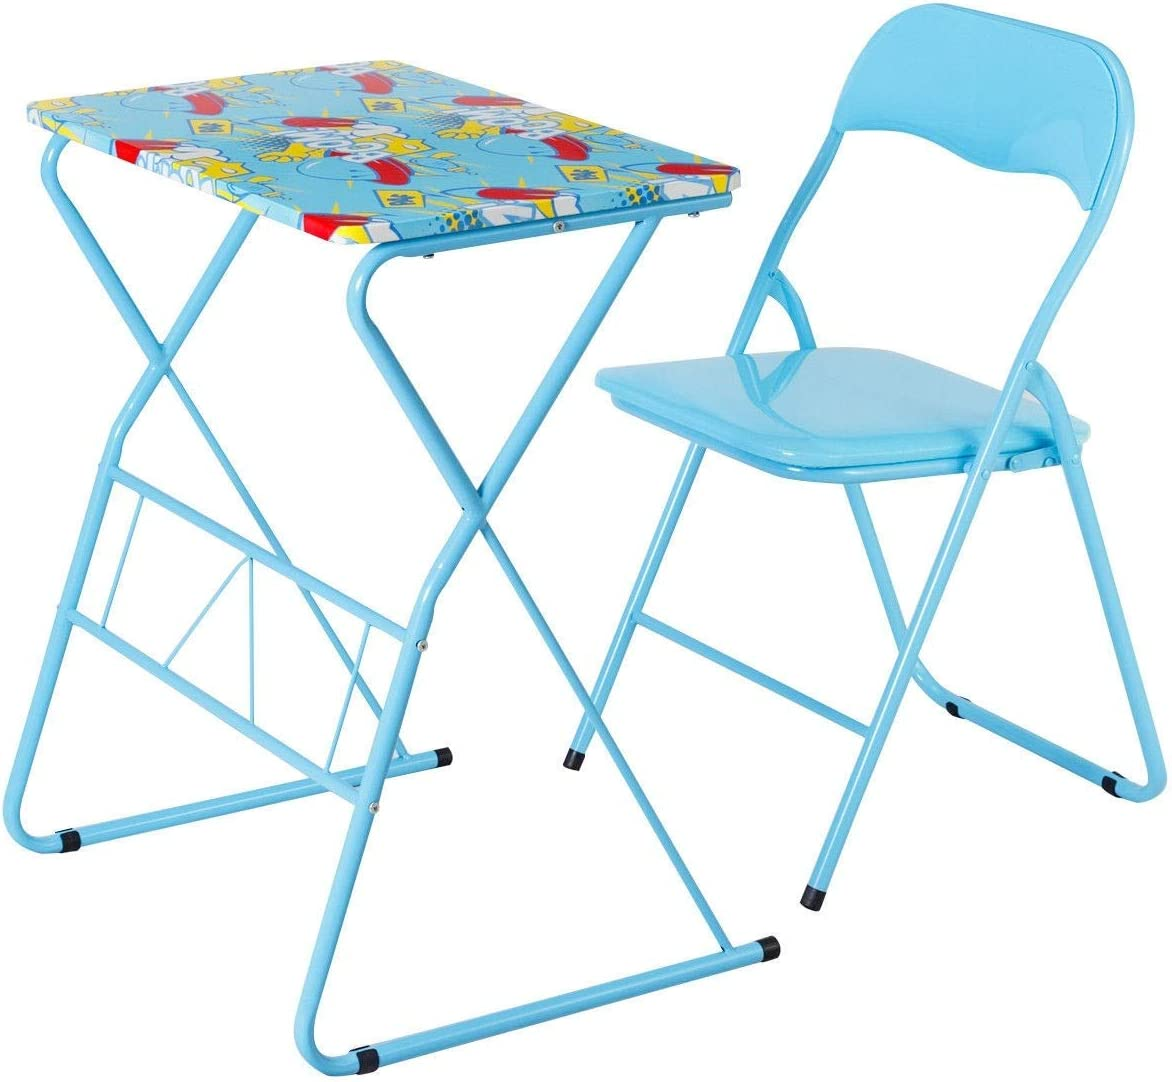 - Amazon.com: King77777 Home School Kids Study Writing Folding Table